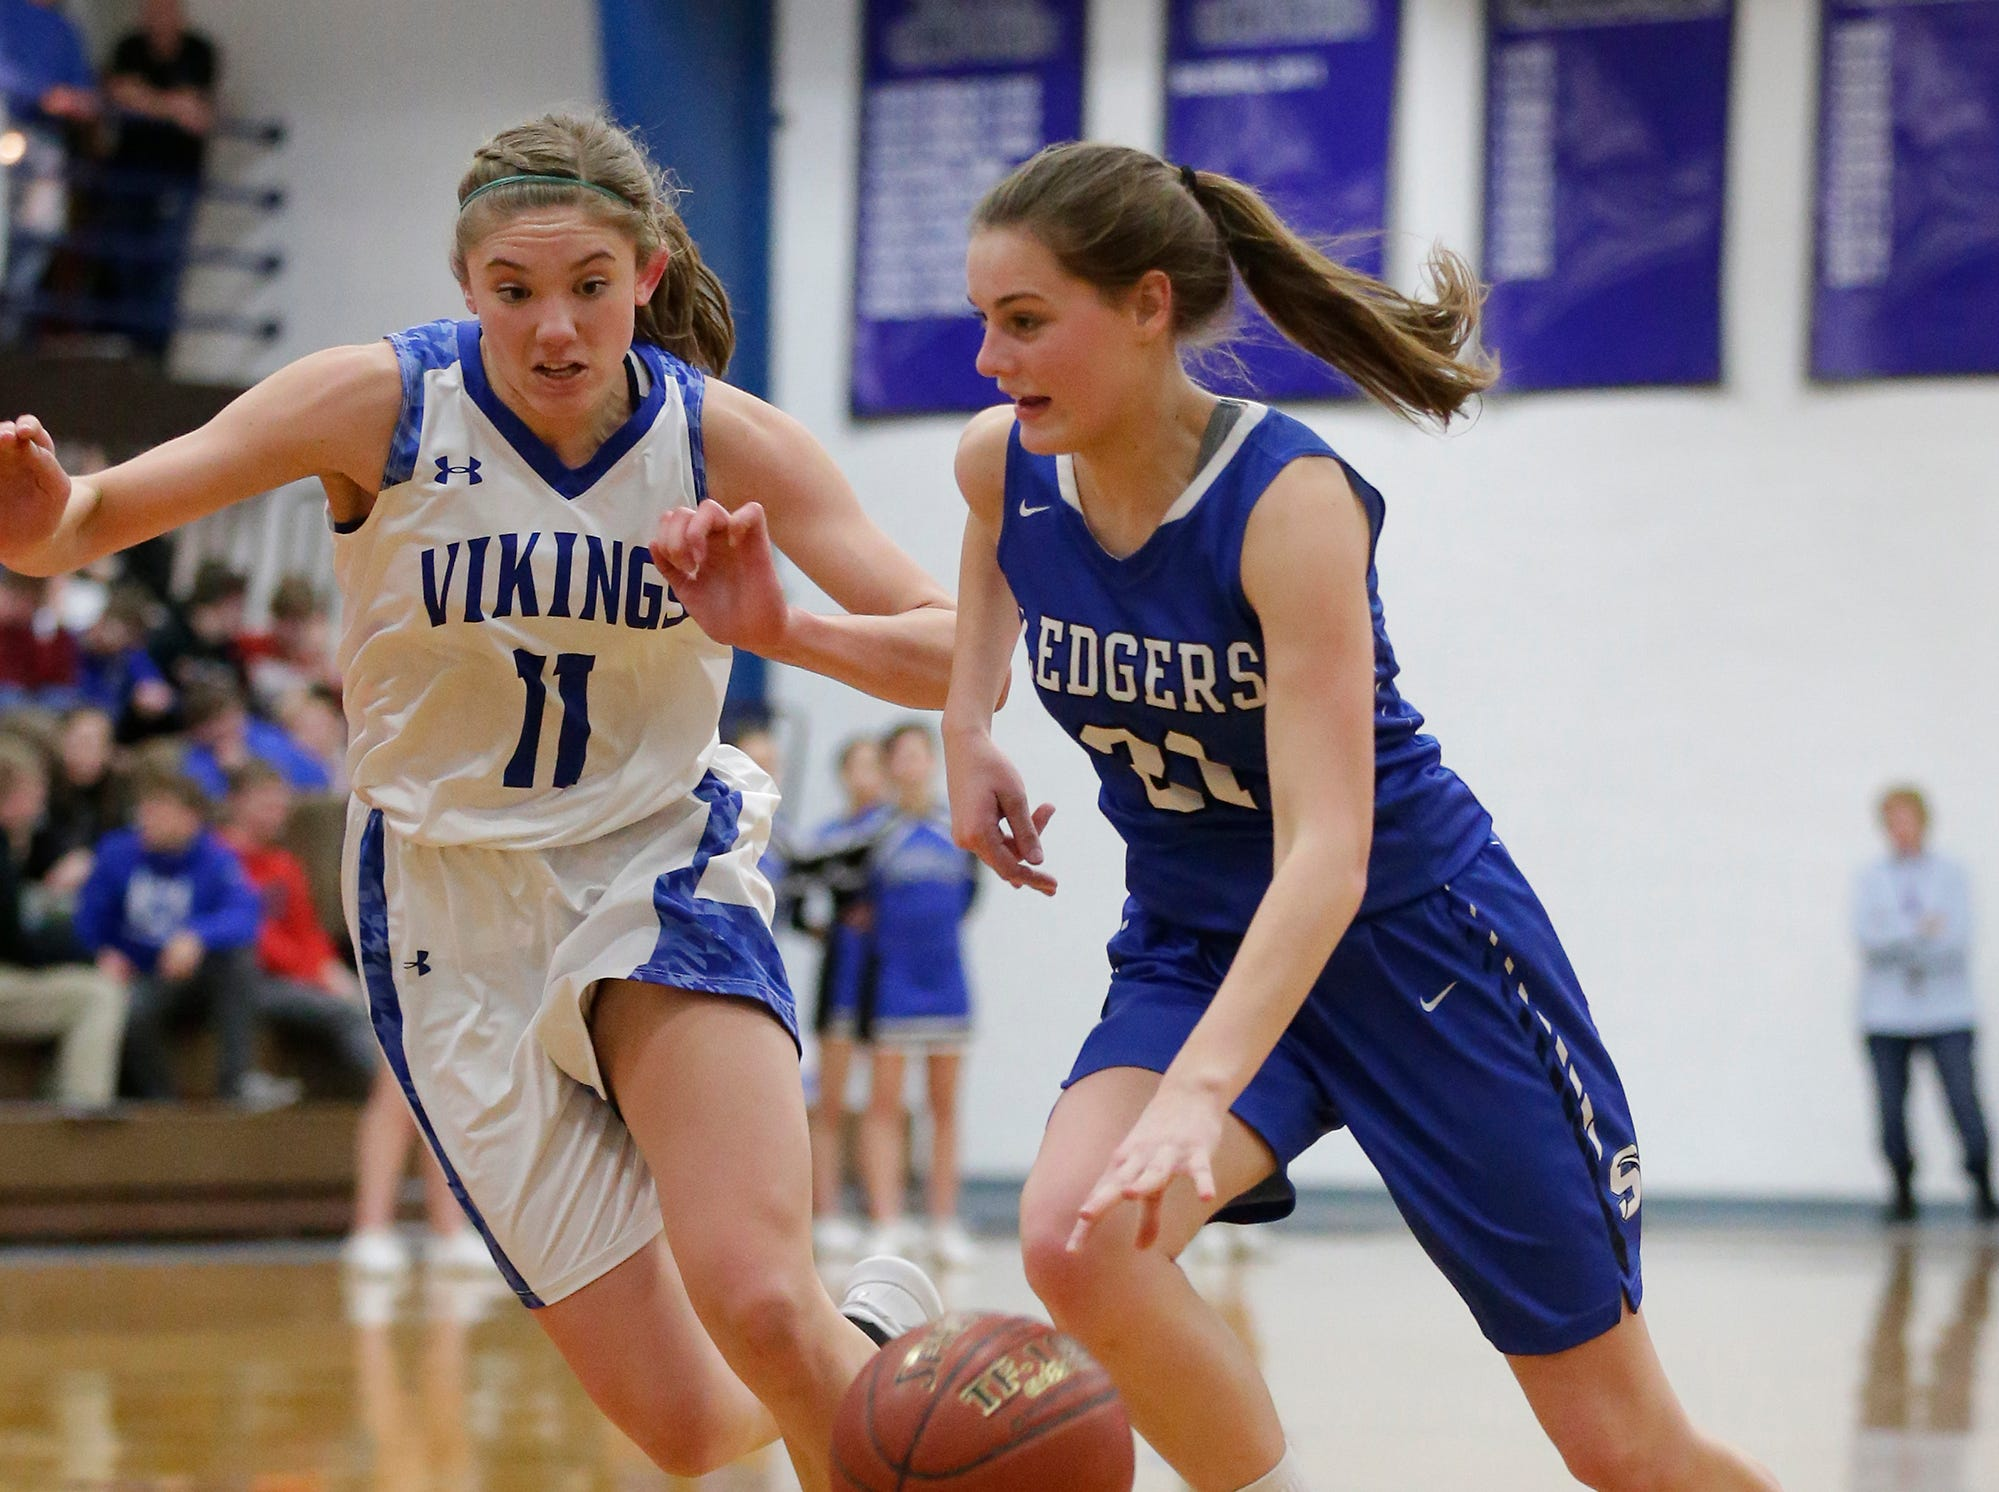 St. Mary's Springs Academy girls basketball's Jennifer Chatterton drives down court while Winnebago Lutheran Academy's Alyssa Lorenz defends her during their game Tuesday, February 5, 2019 in Fond du Lac, Wisconsin. Winnebago Lutheran won the game 44-35. Doug Raflik/USA TODAY NETWORK-Wisconsin